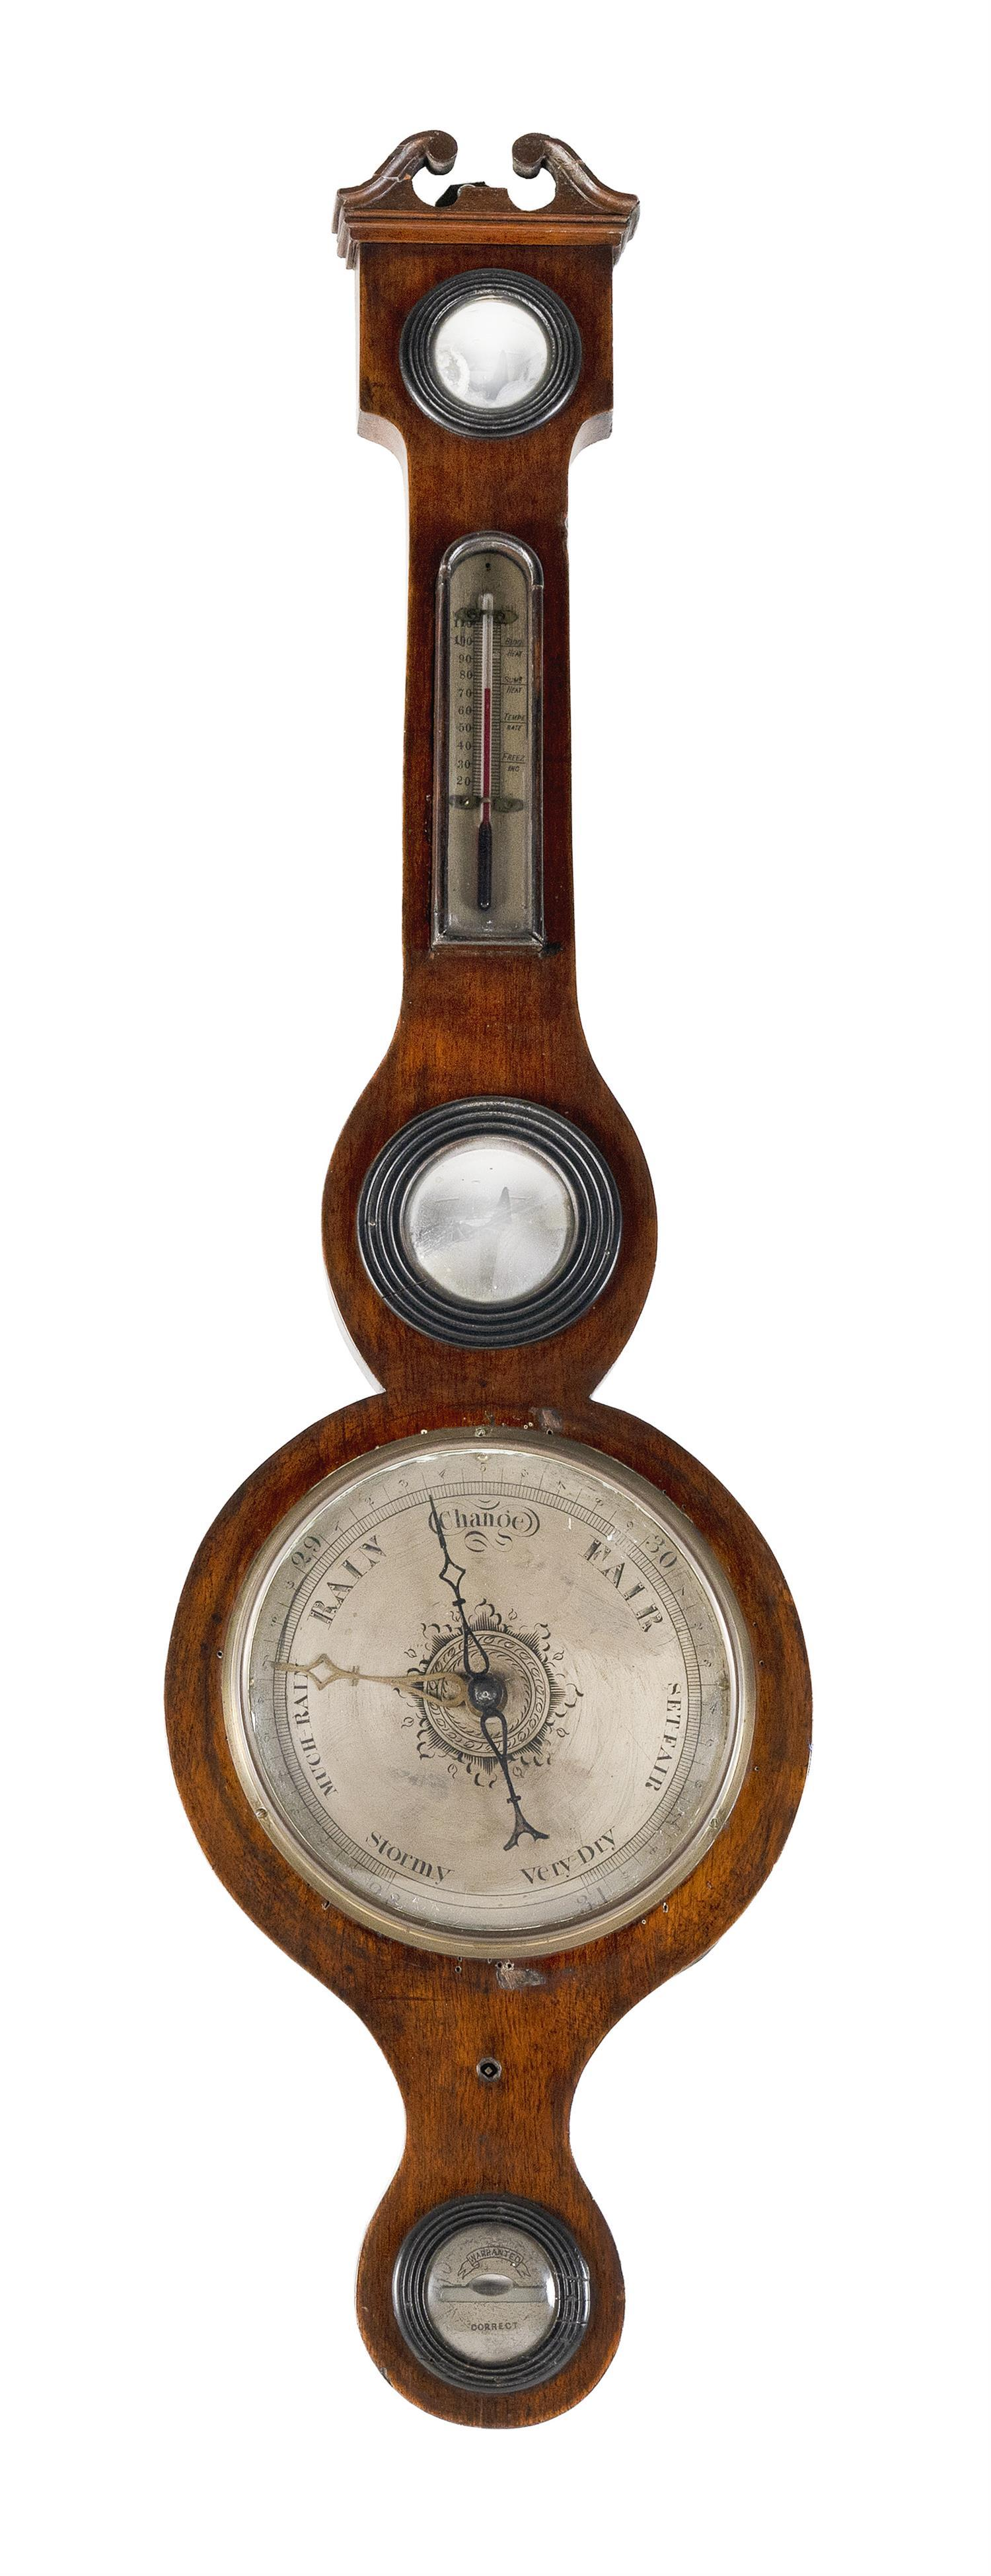 "ENGLISH BANJO BAROMETER Mahogany and mahogany veneer case. Height 38""."